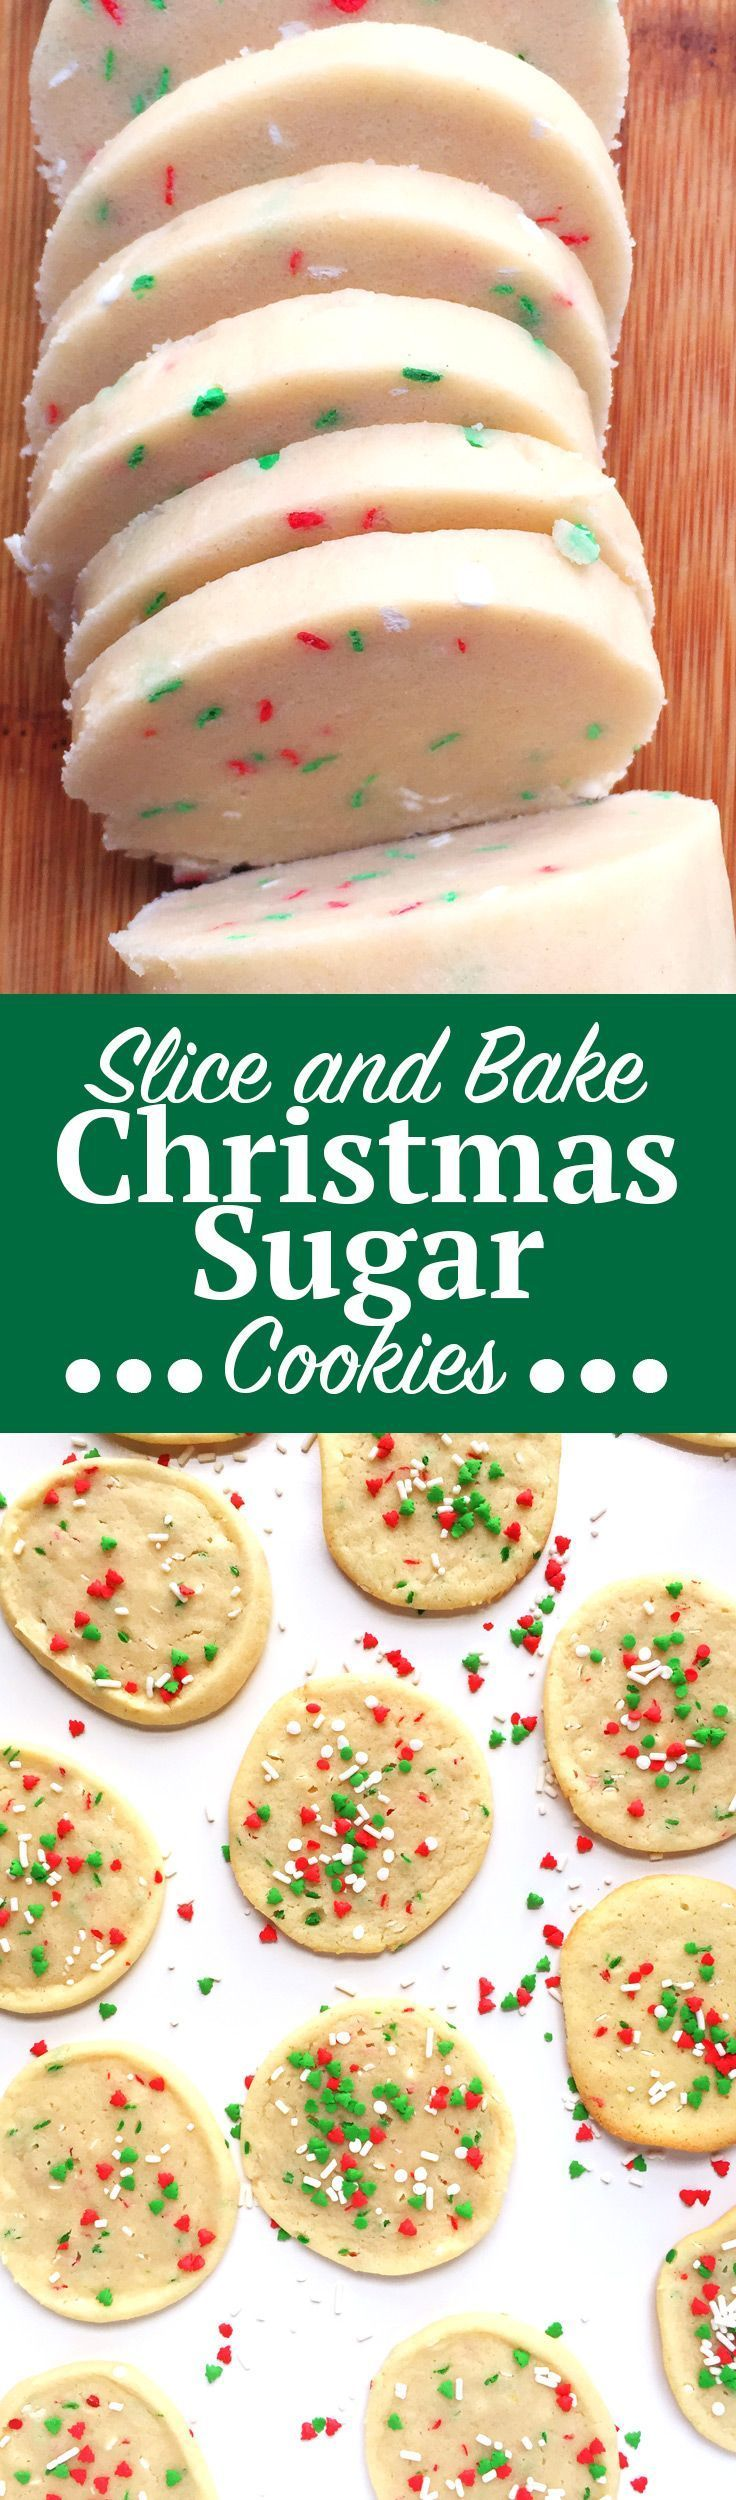 Slice and Bake Christmas Sugar Cookies. This no-roll, easy Christmas Sugar Cookie recipe is simply slice and bake, no messy flour surfaces needed! Add this to your holiday sugar cookie recipe collection ASAP and click through for the full recipe! | SeasonlyCreations... | @SeasonlyBlog